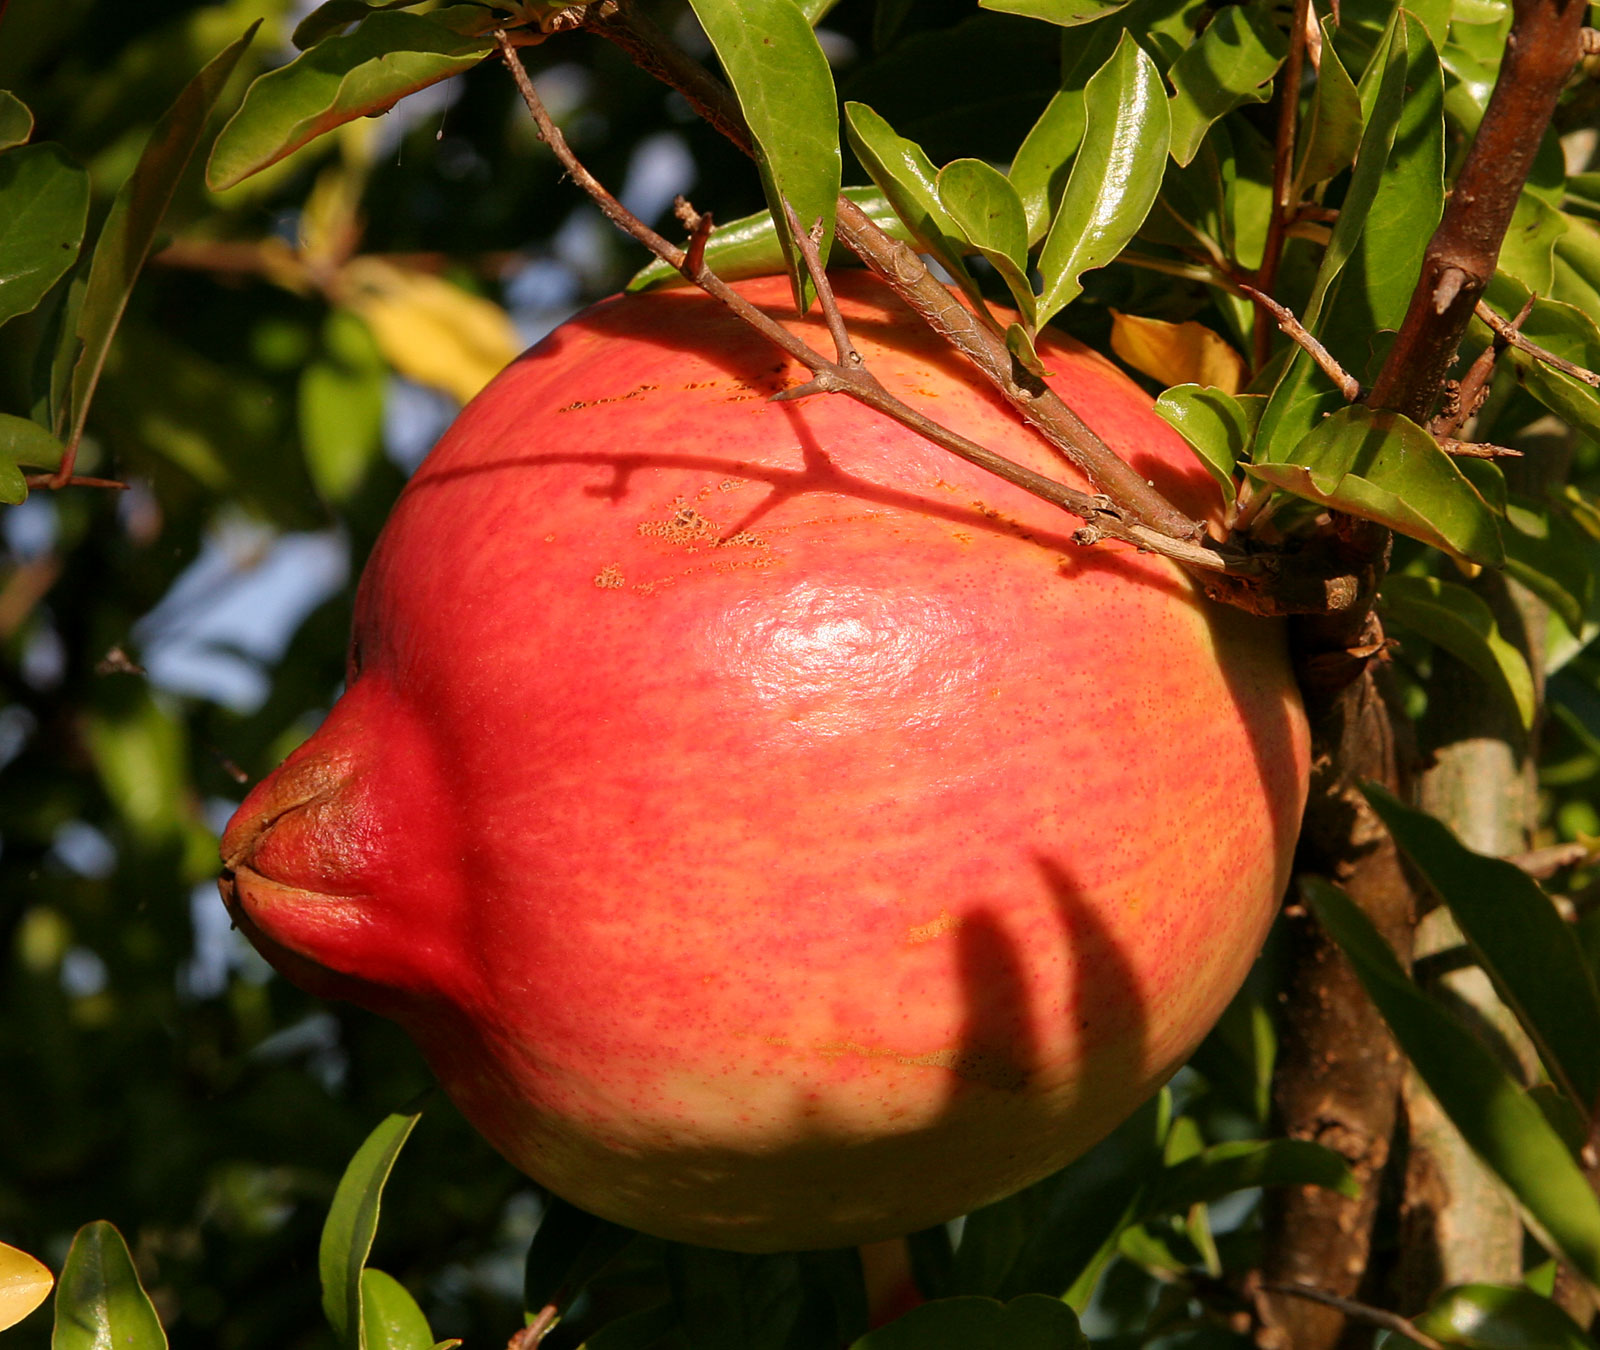 Pomegranate Fruit Wikipedia Bahasa Indonesia Ensiklopedia Bebas